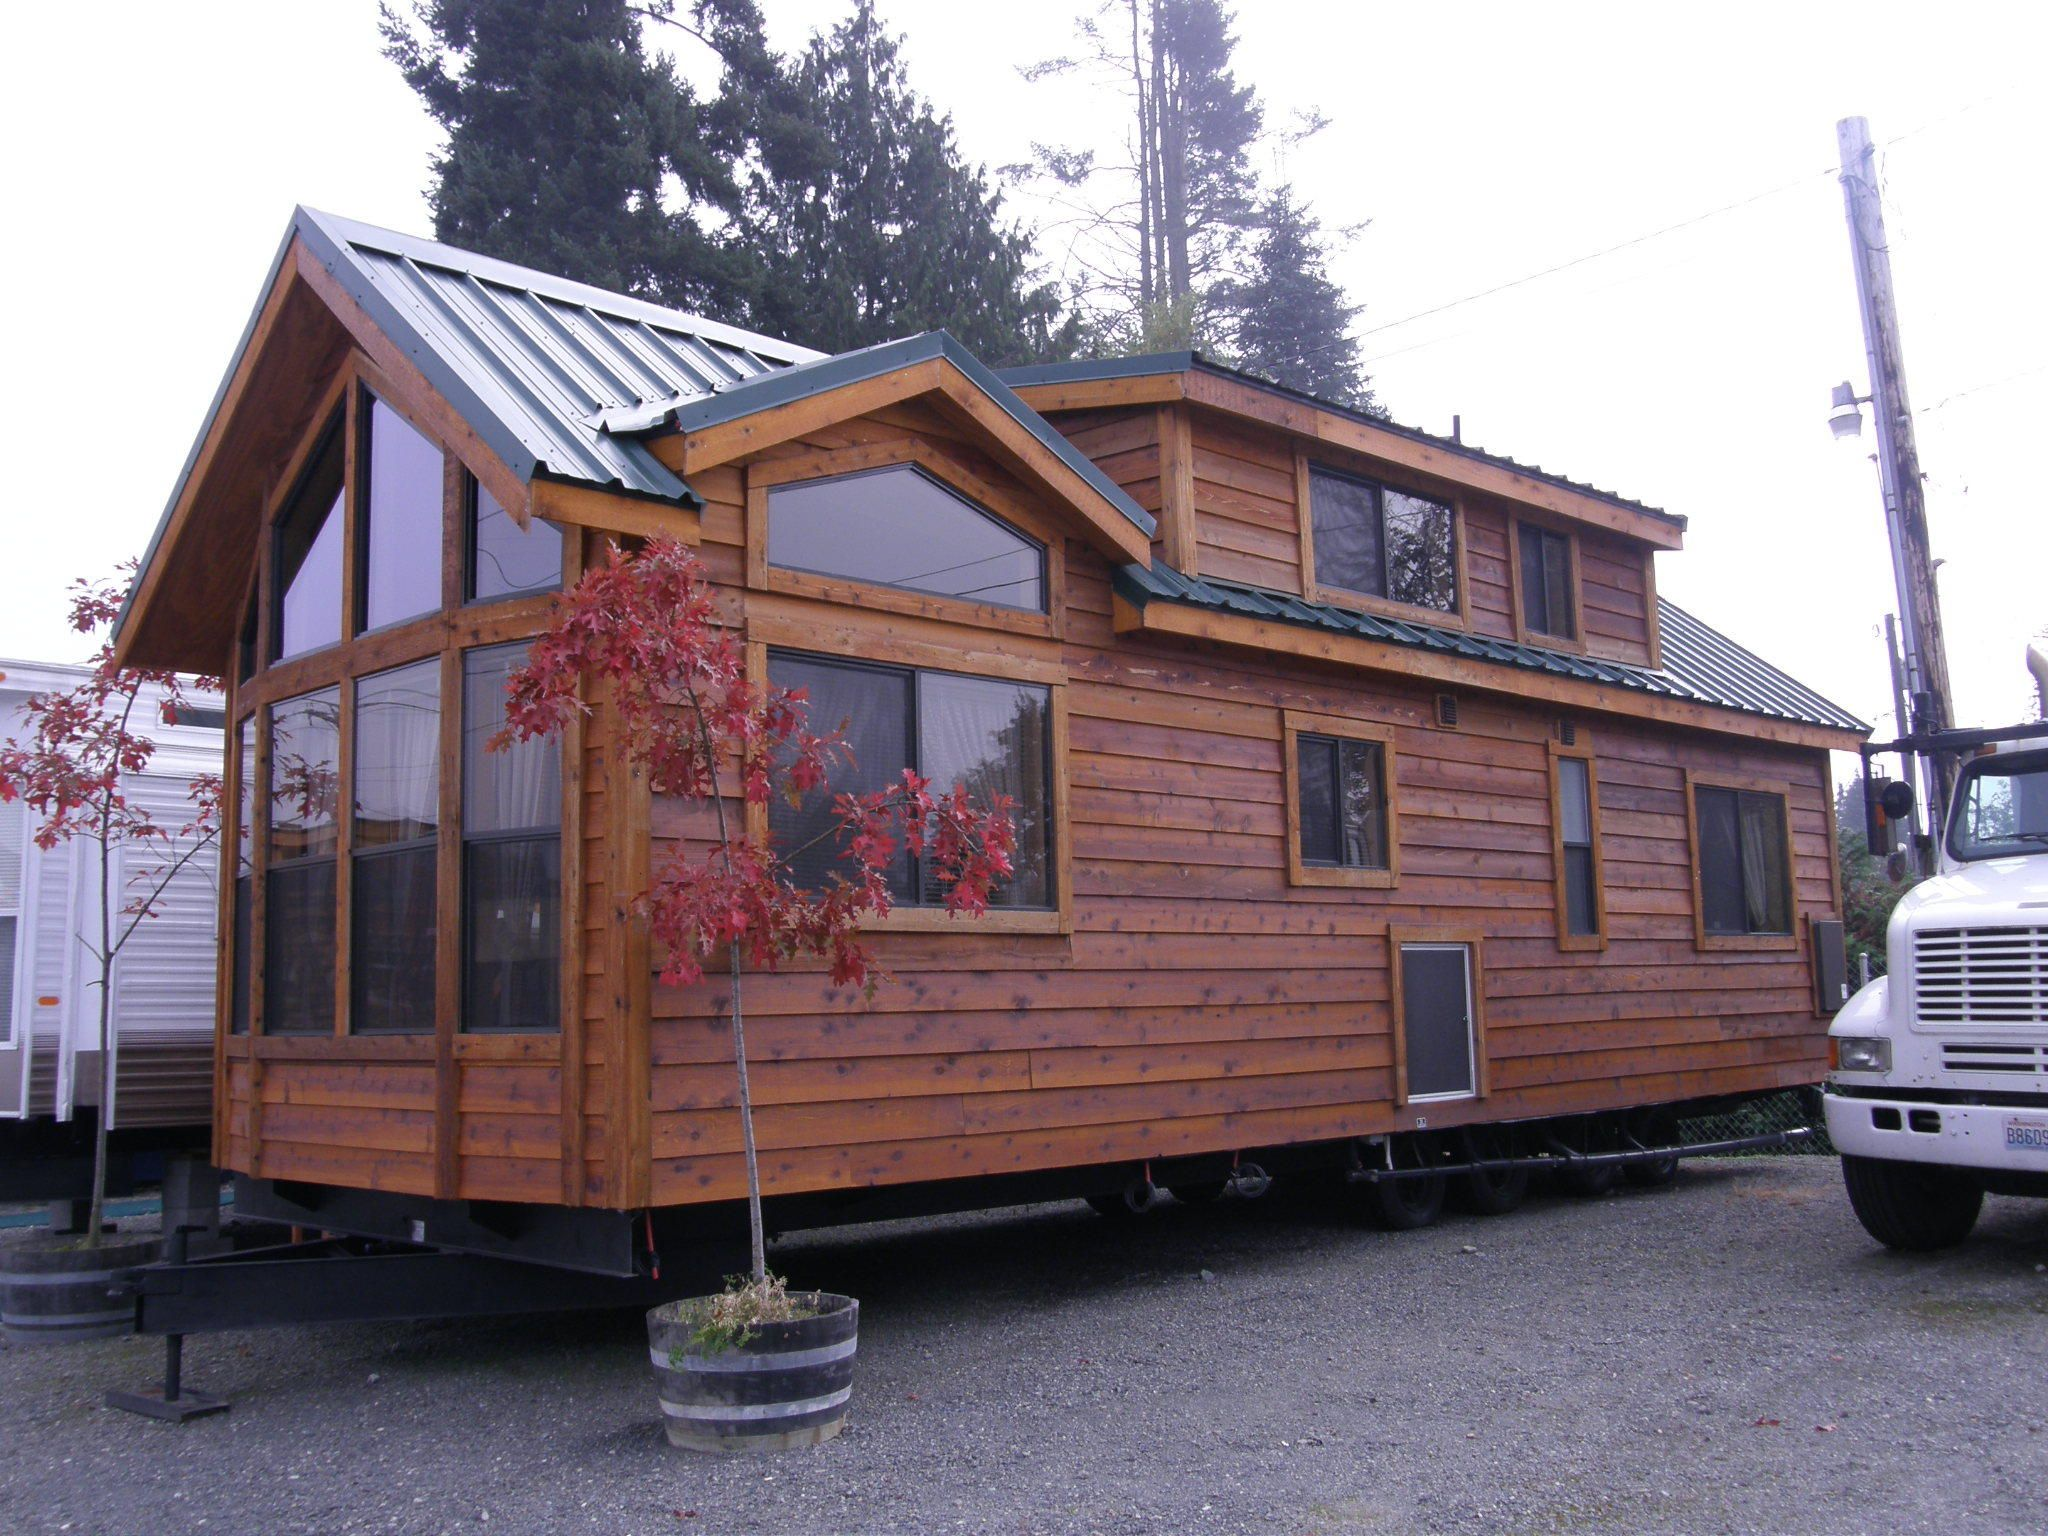 Swell 17 Best Ideas About Small Houses On Wheels On Pinterest Tiny Largest Home Design Picture Inspirations Pitcheantrous